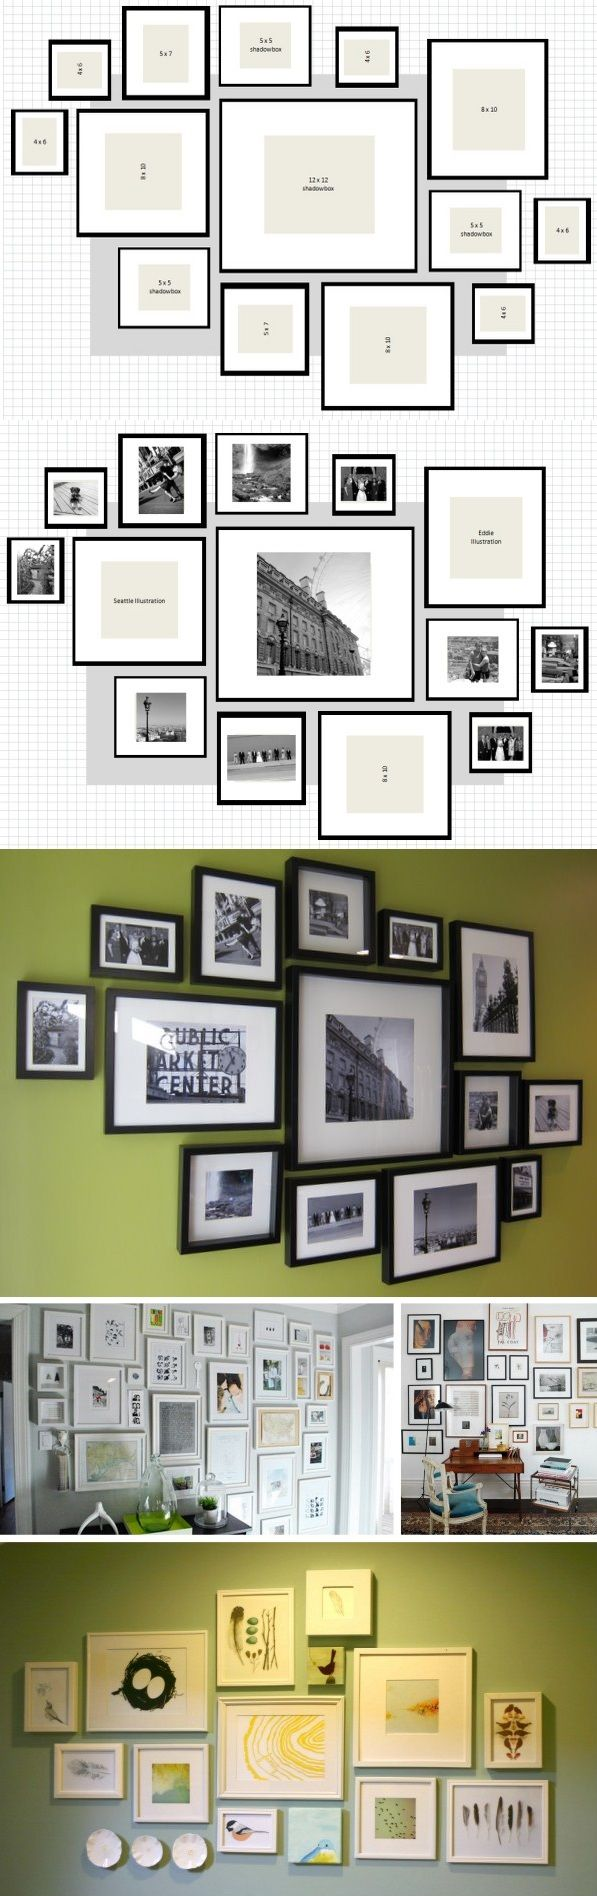 How To Ikea Ribba Frame Gallery Wall 1p 12 X Shadowbox 3p 5 Shadowbo 8 10 Frames